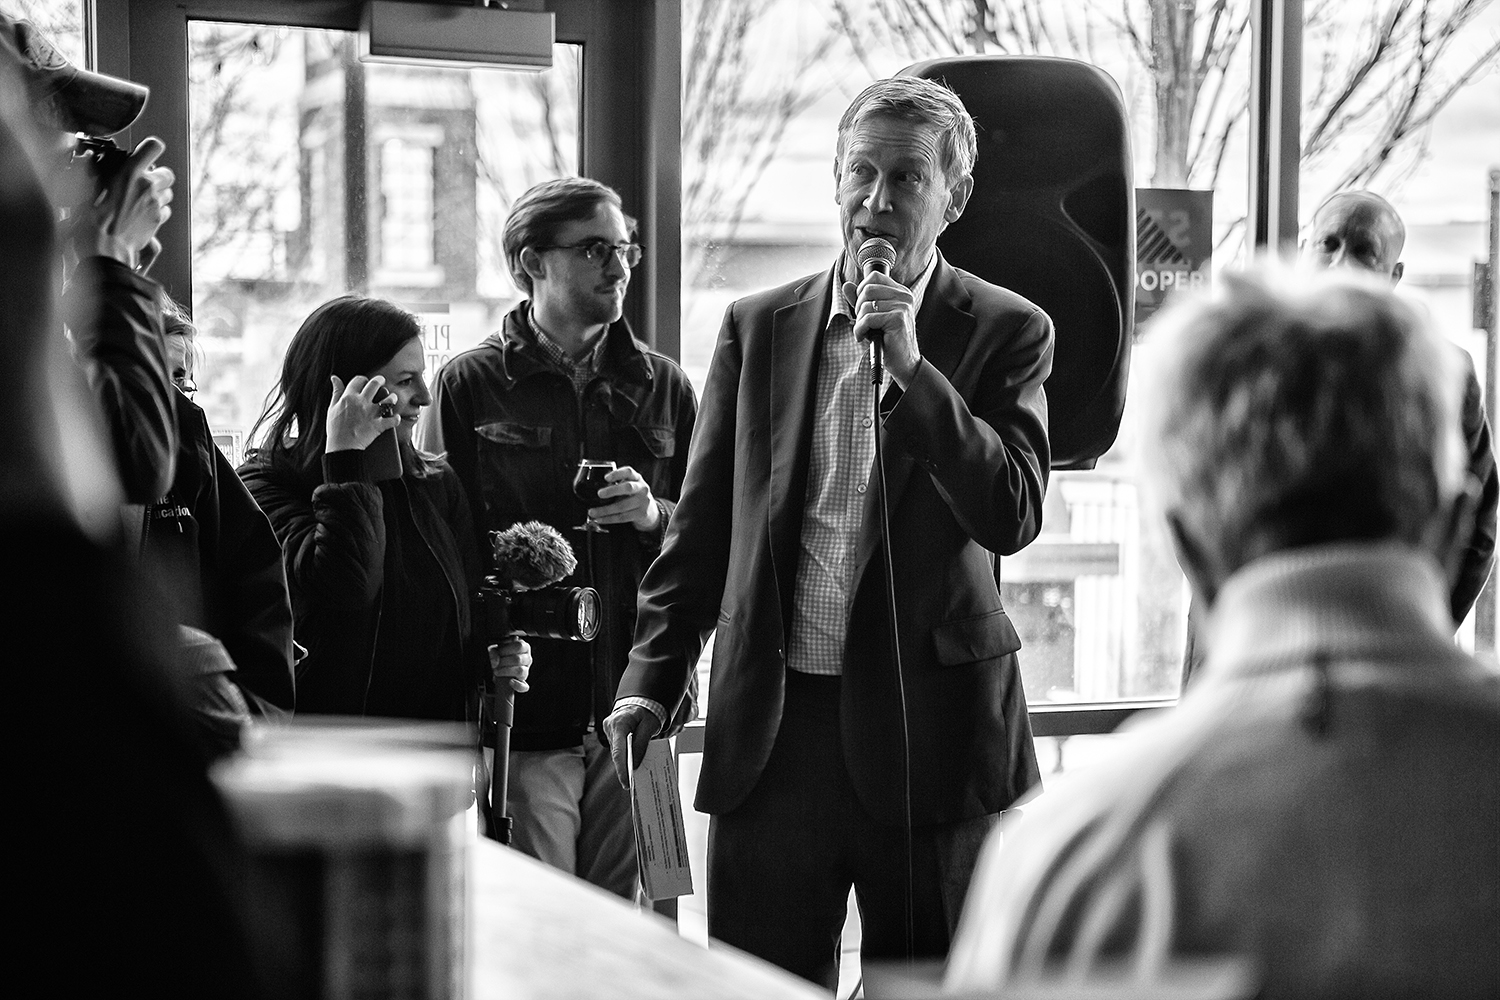 Former+Colorado+Gov.+John+Hickenlooper+speaks+at+Backpocket+Brewery+in+Coralville+on+Friday%2C+April+12%2C+2019.